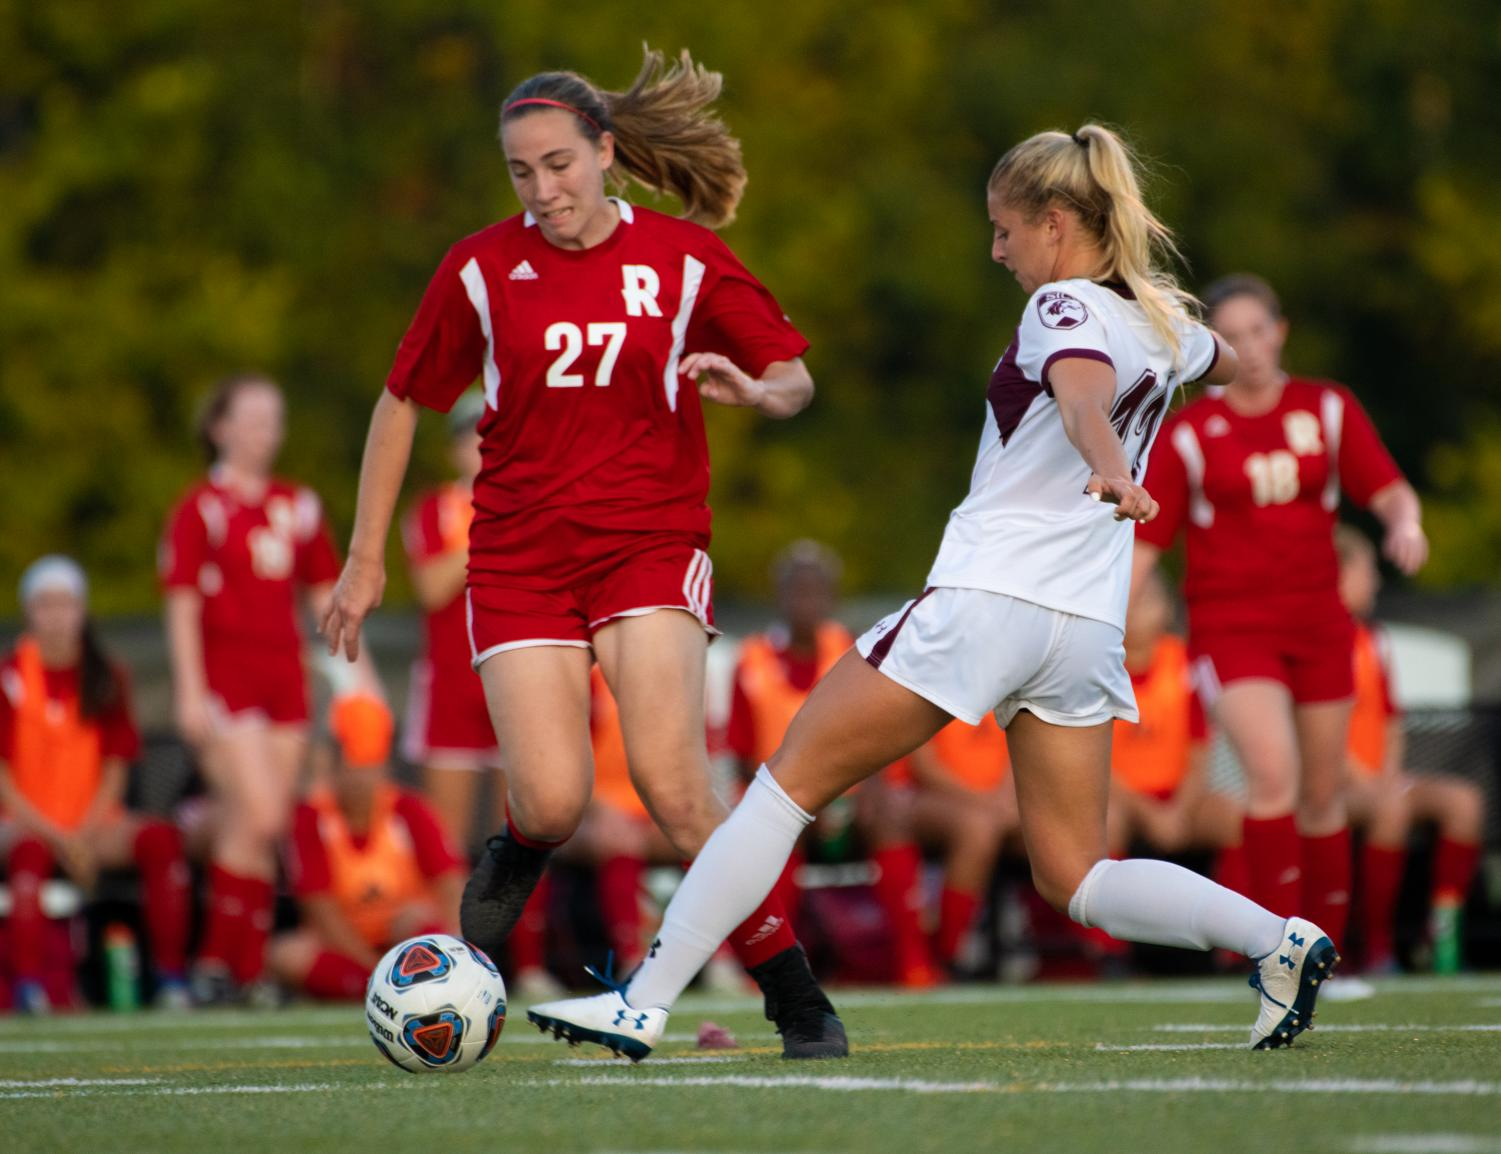 Saluki+freshman+Marissa+Basi+kicks+the+ball+past+the+defense+on+Tuesday%2C+Aug.+27%2C+2019+during+the+Salukis%27+1-0+win+against+the+Rose-Hulman+Fightin%27+Engineers+at+the+Lew+Hartzog+Track+%26+Field+Complex.